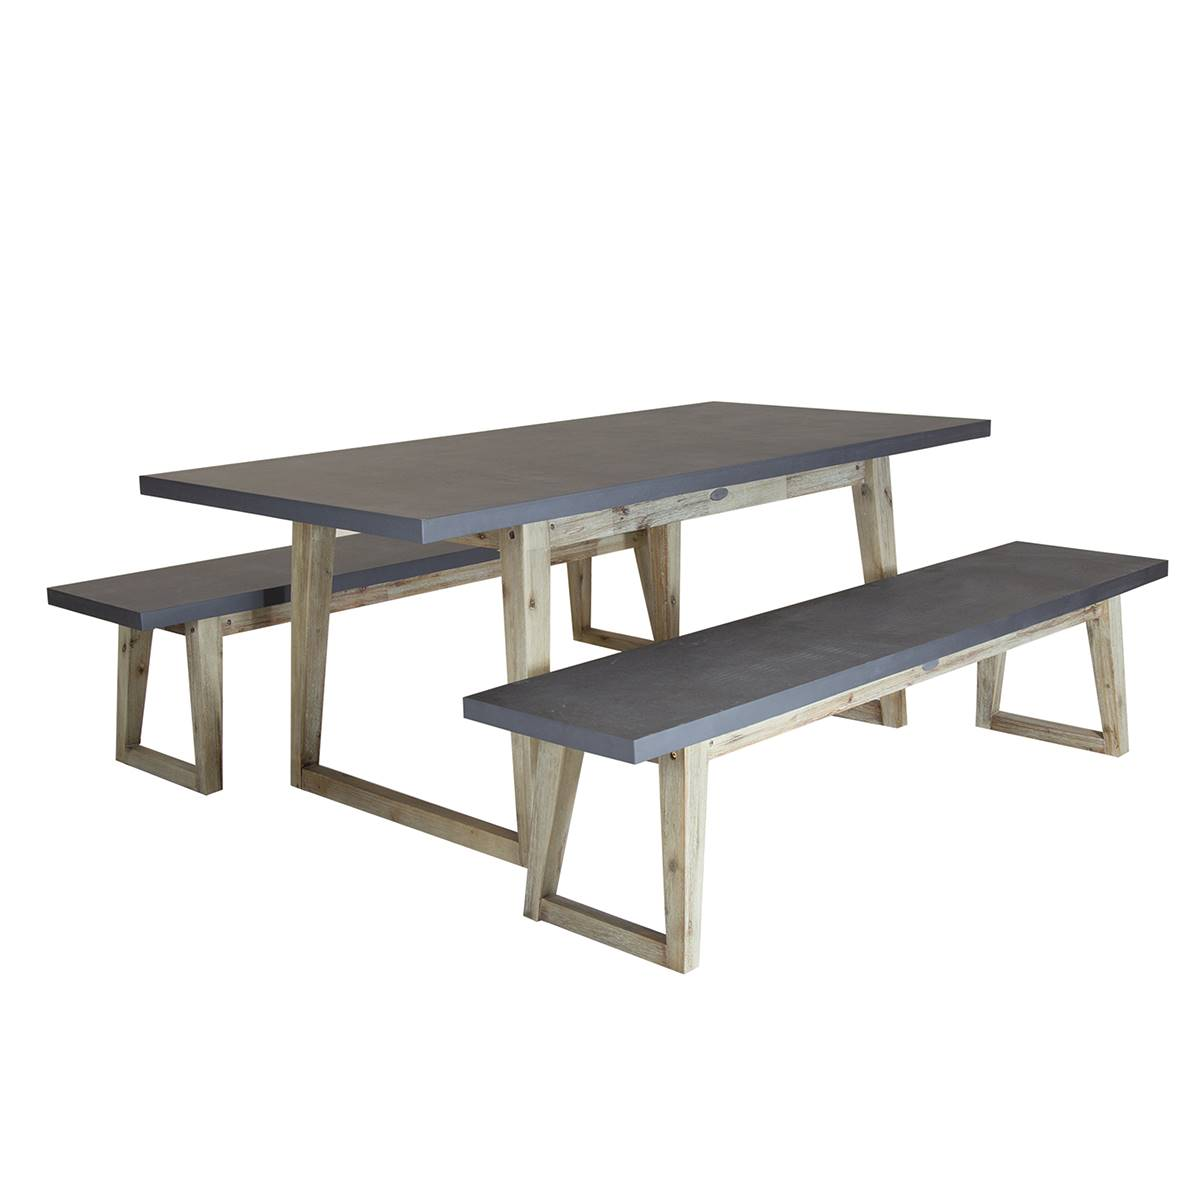 Charles Bentley Fibre Cement And Wood Dining Set Including Table 2 Benches